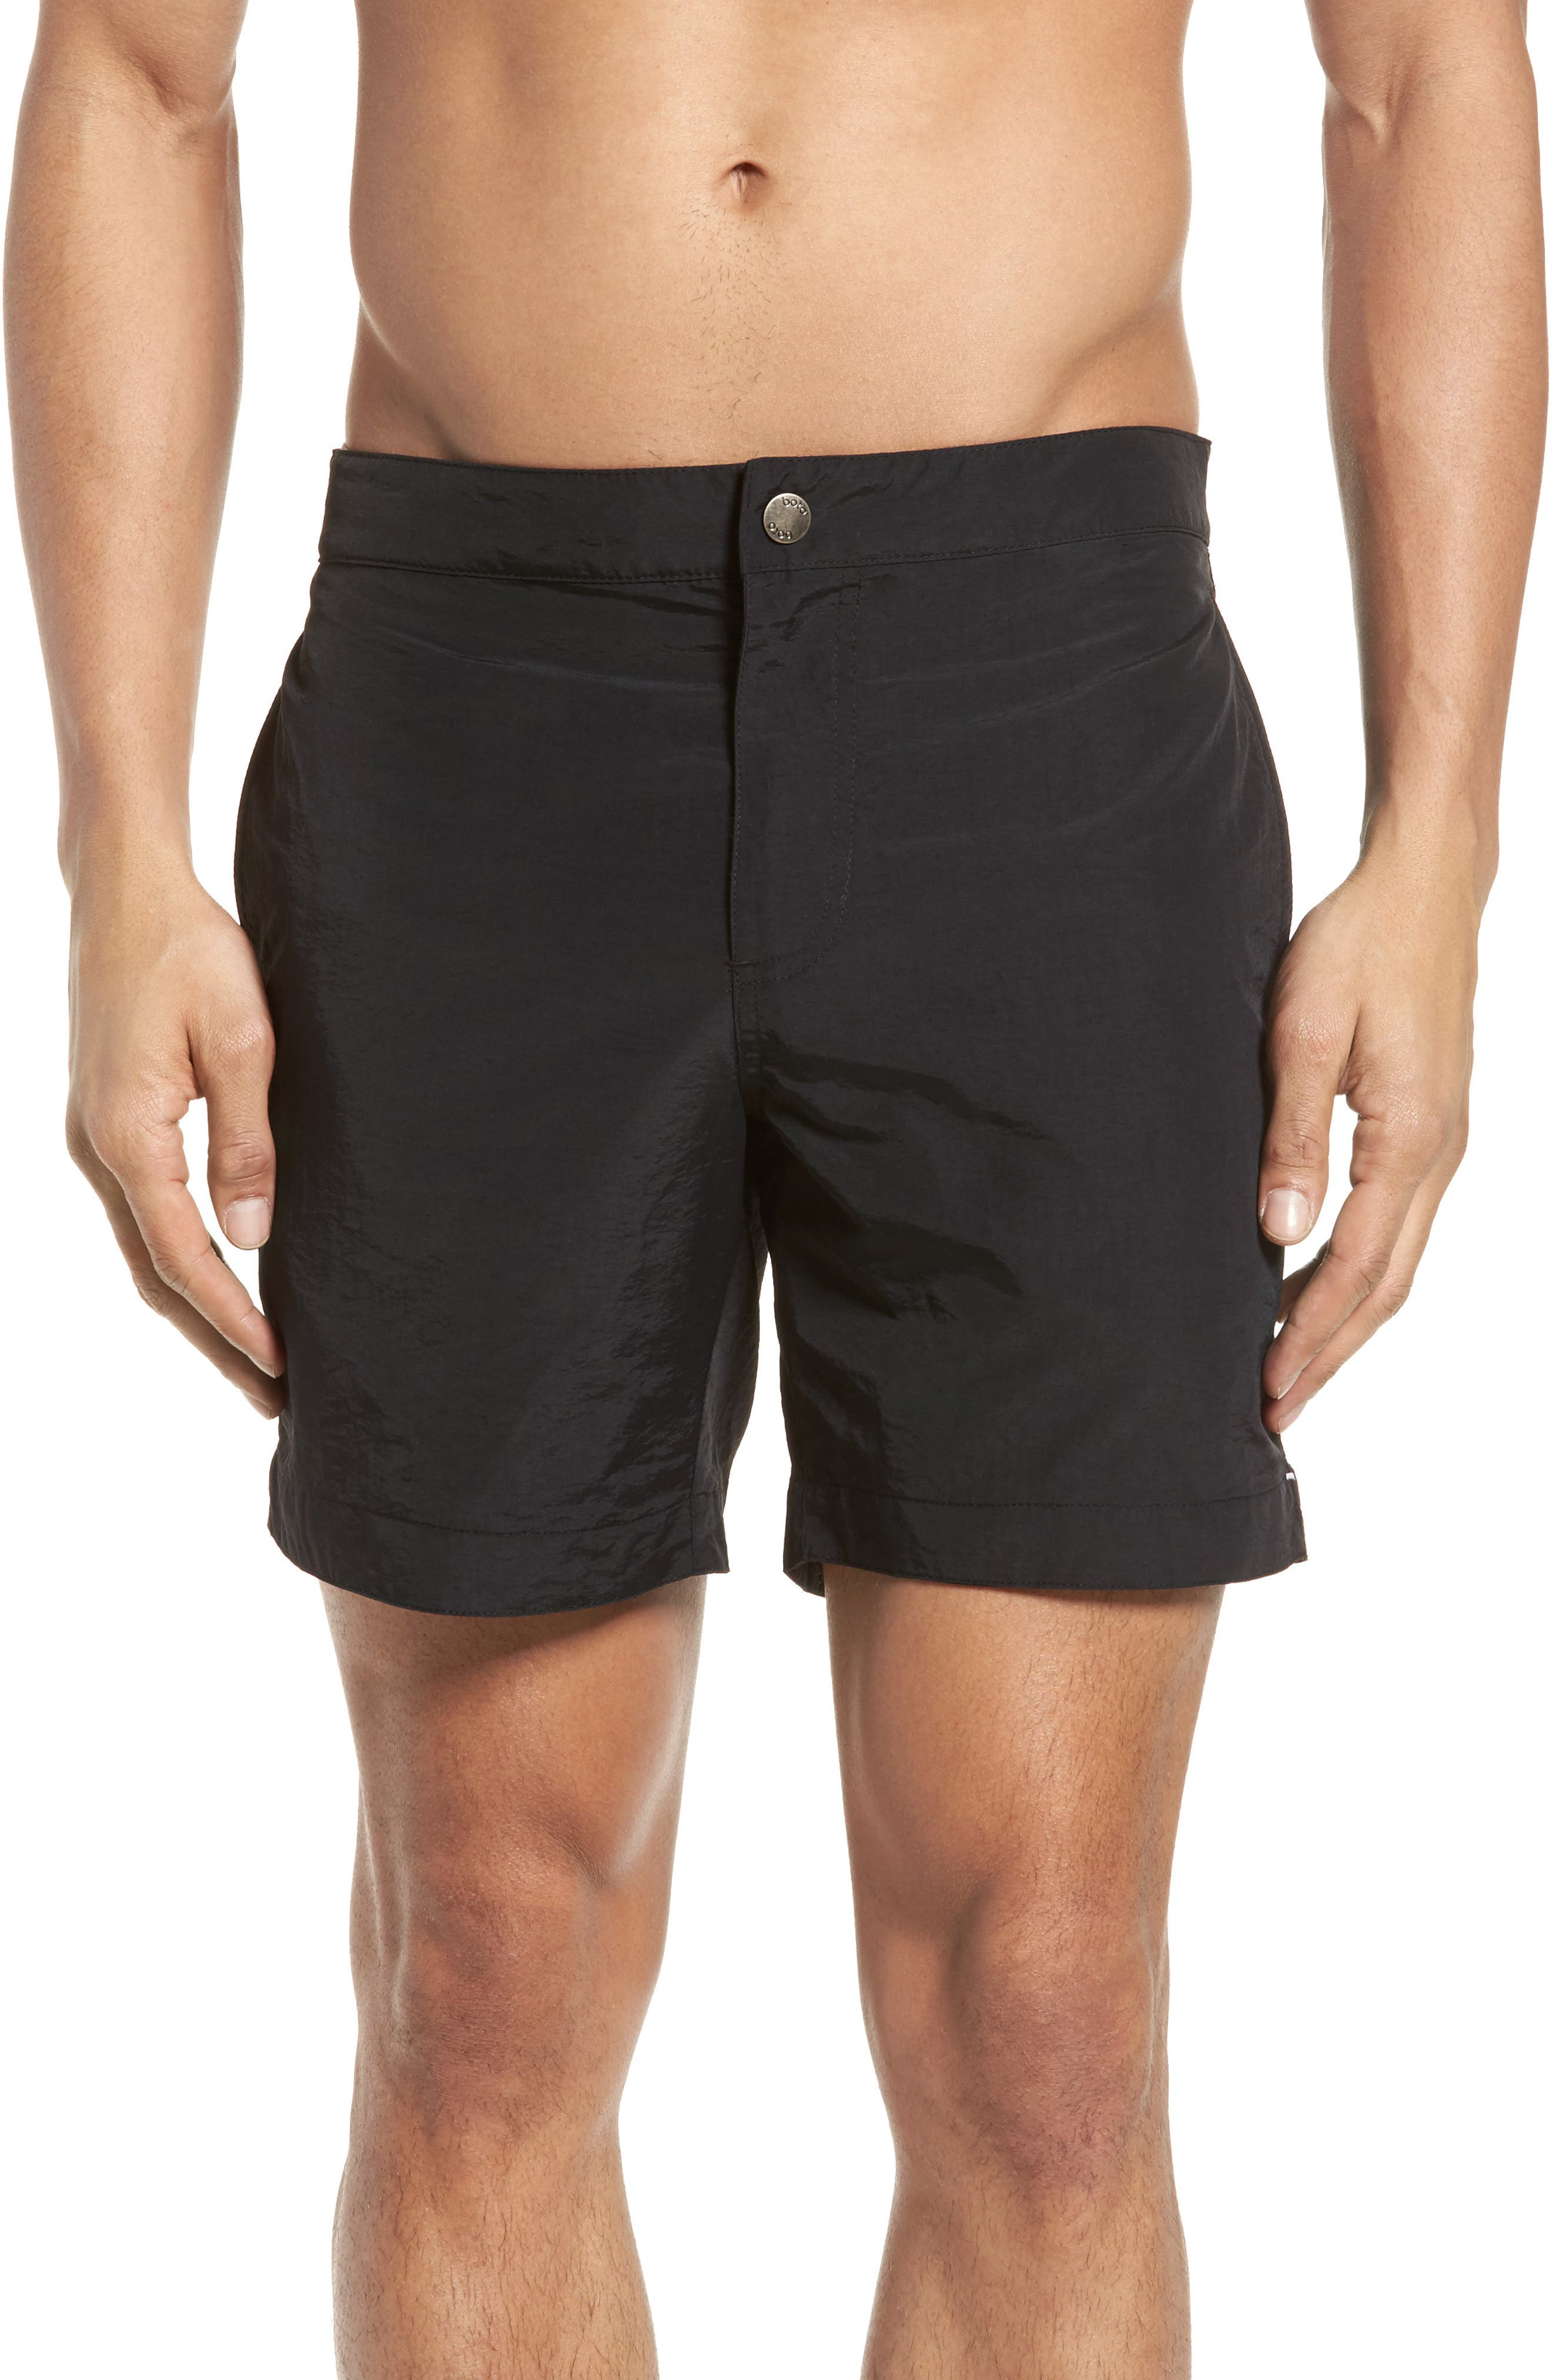 boto 'Aruba' Tailored Fit Swim Trunks (6.5 inch)